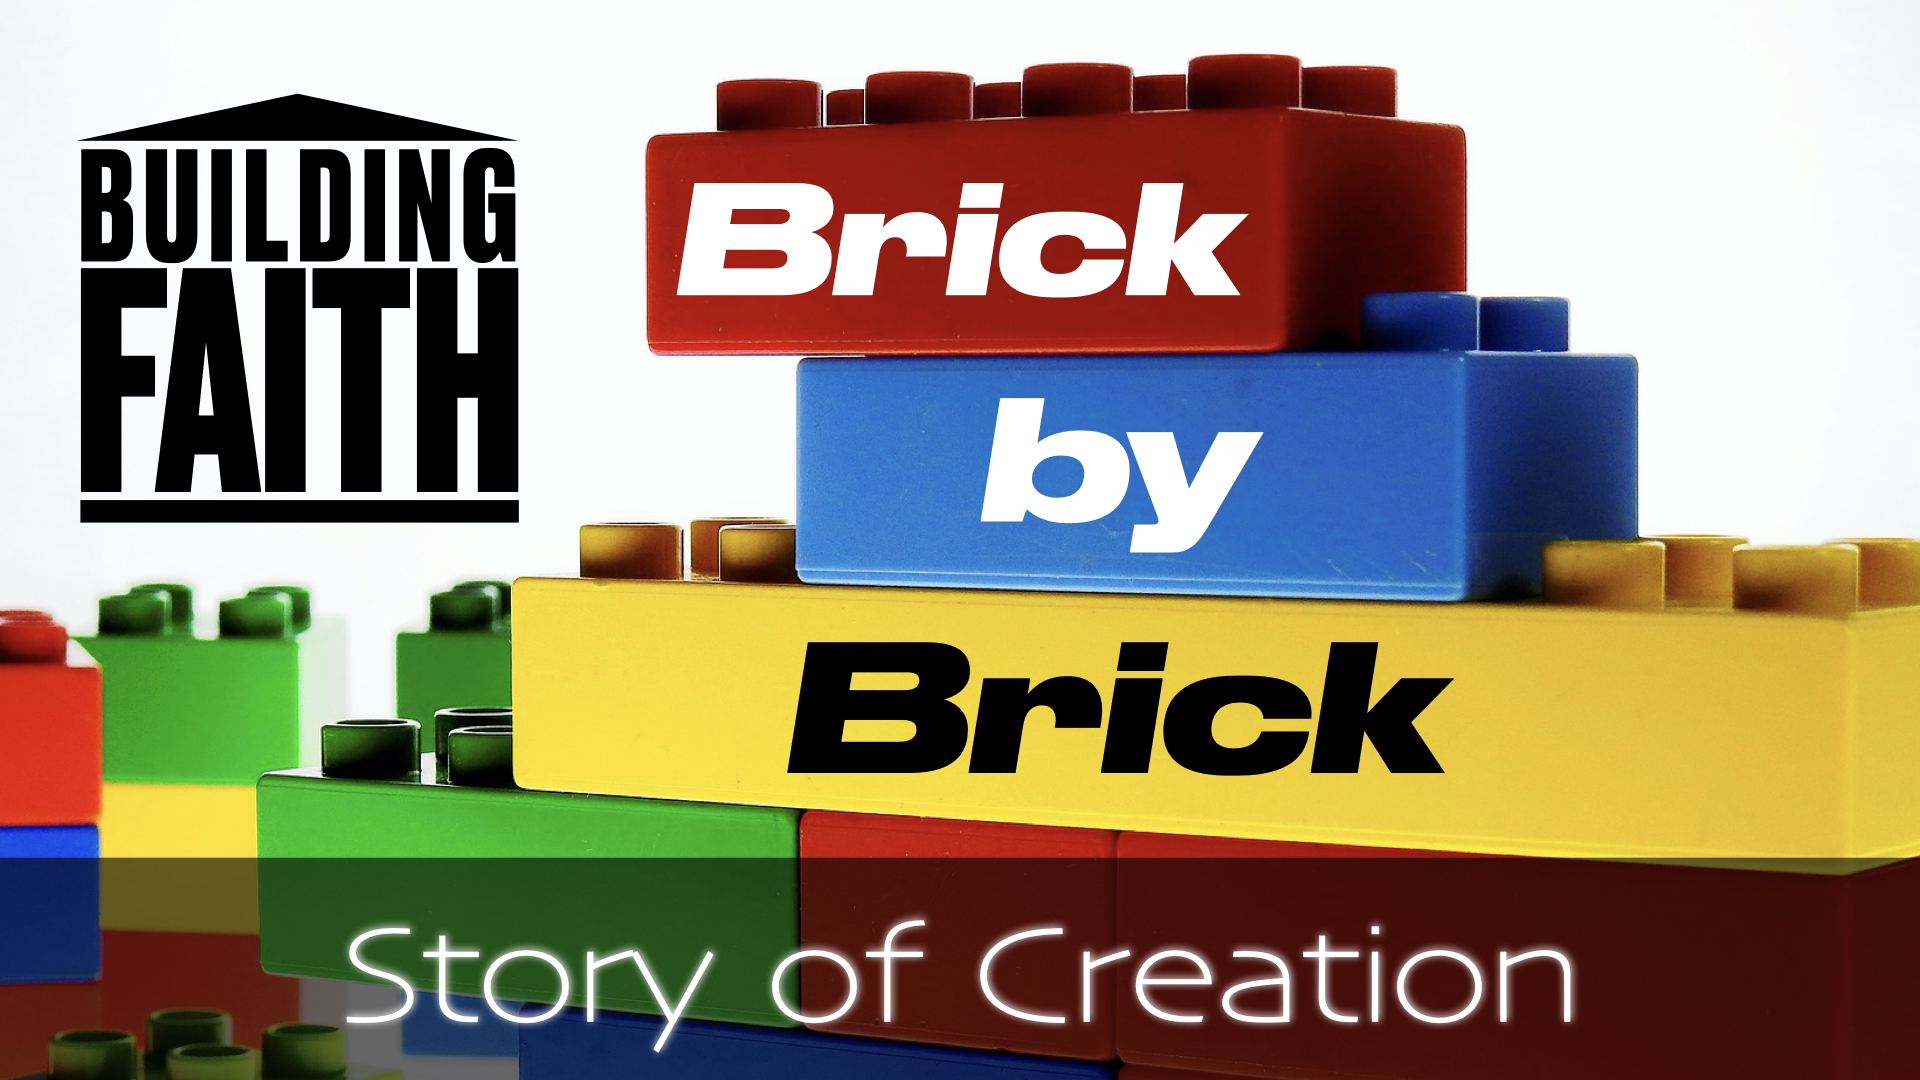 Building Faith Brick by Brick: Story of Creation